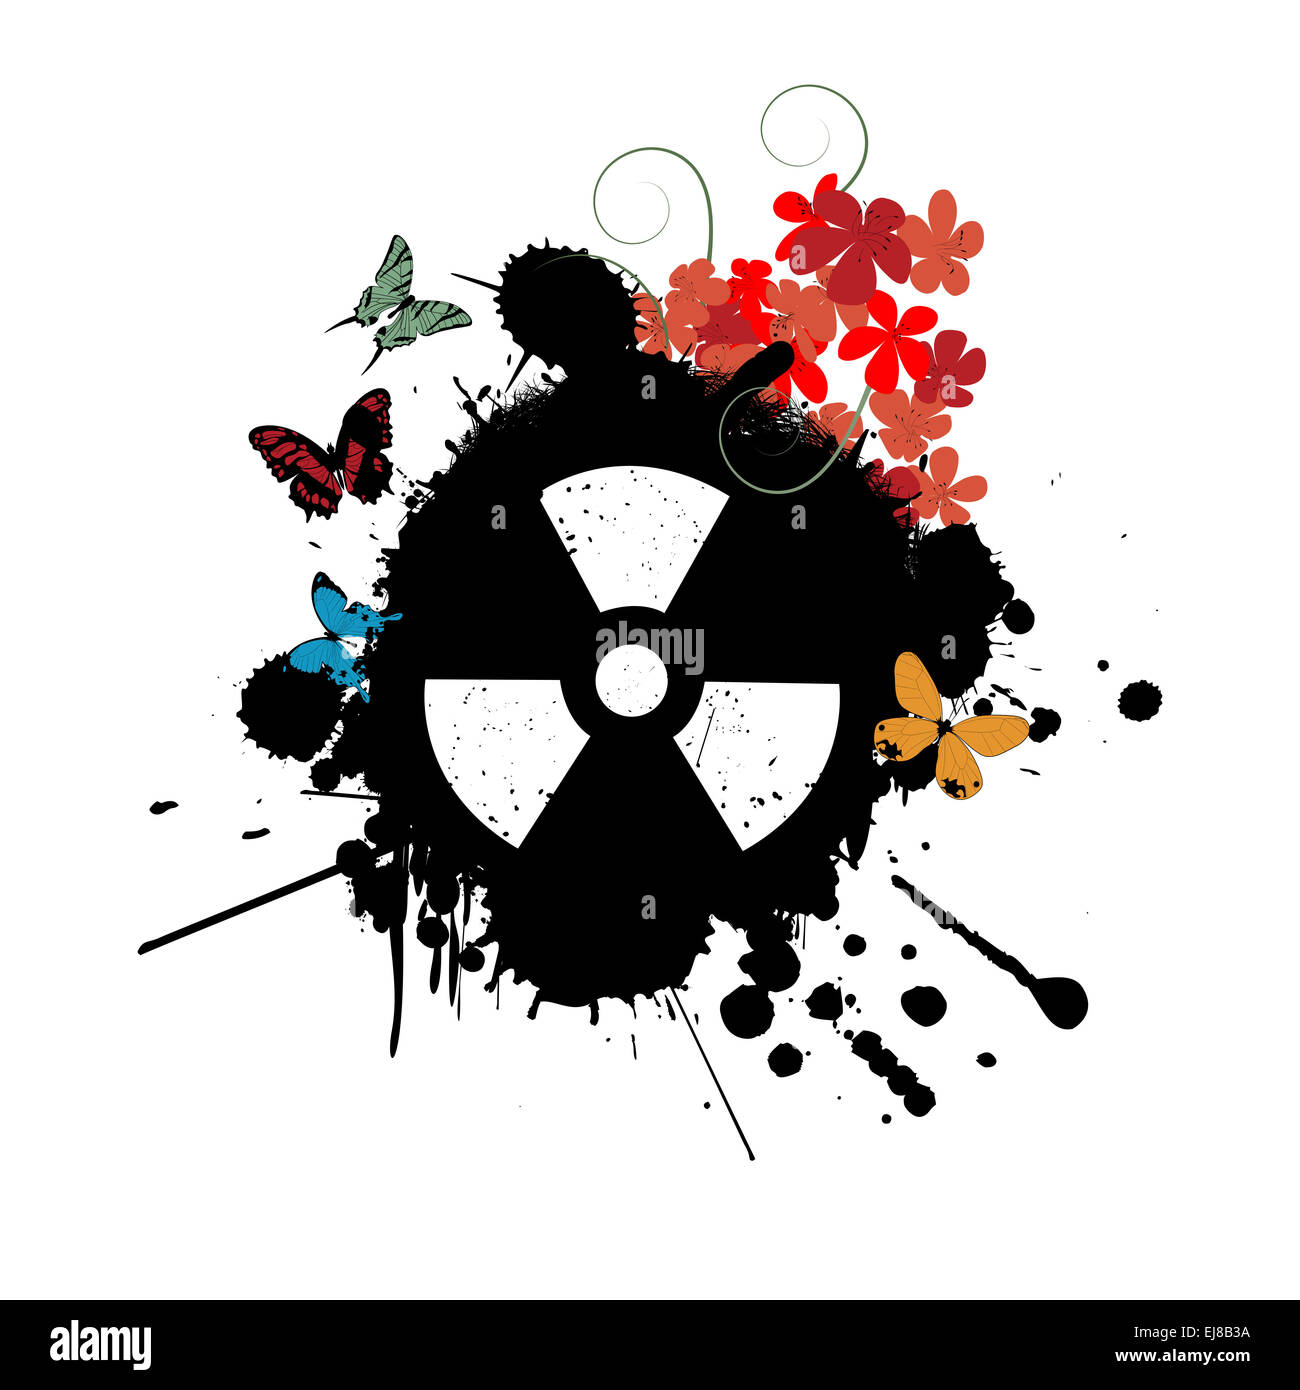 Nuclear abstract - Stock Image